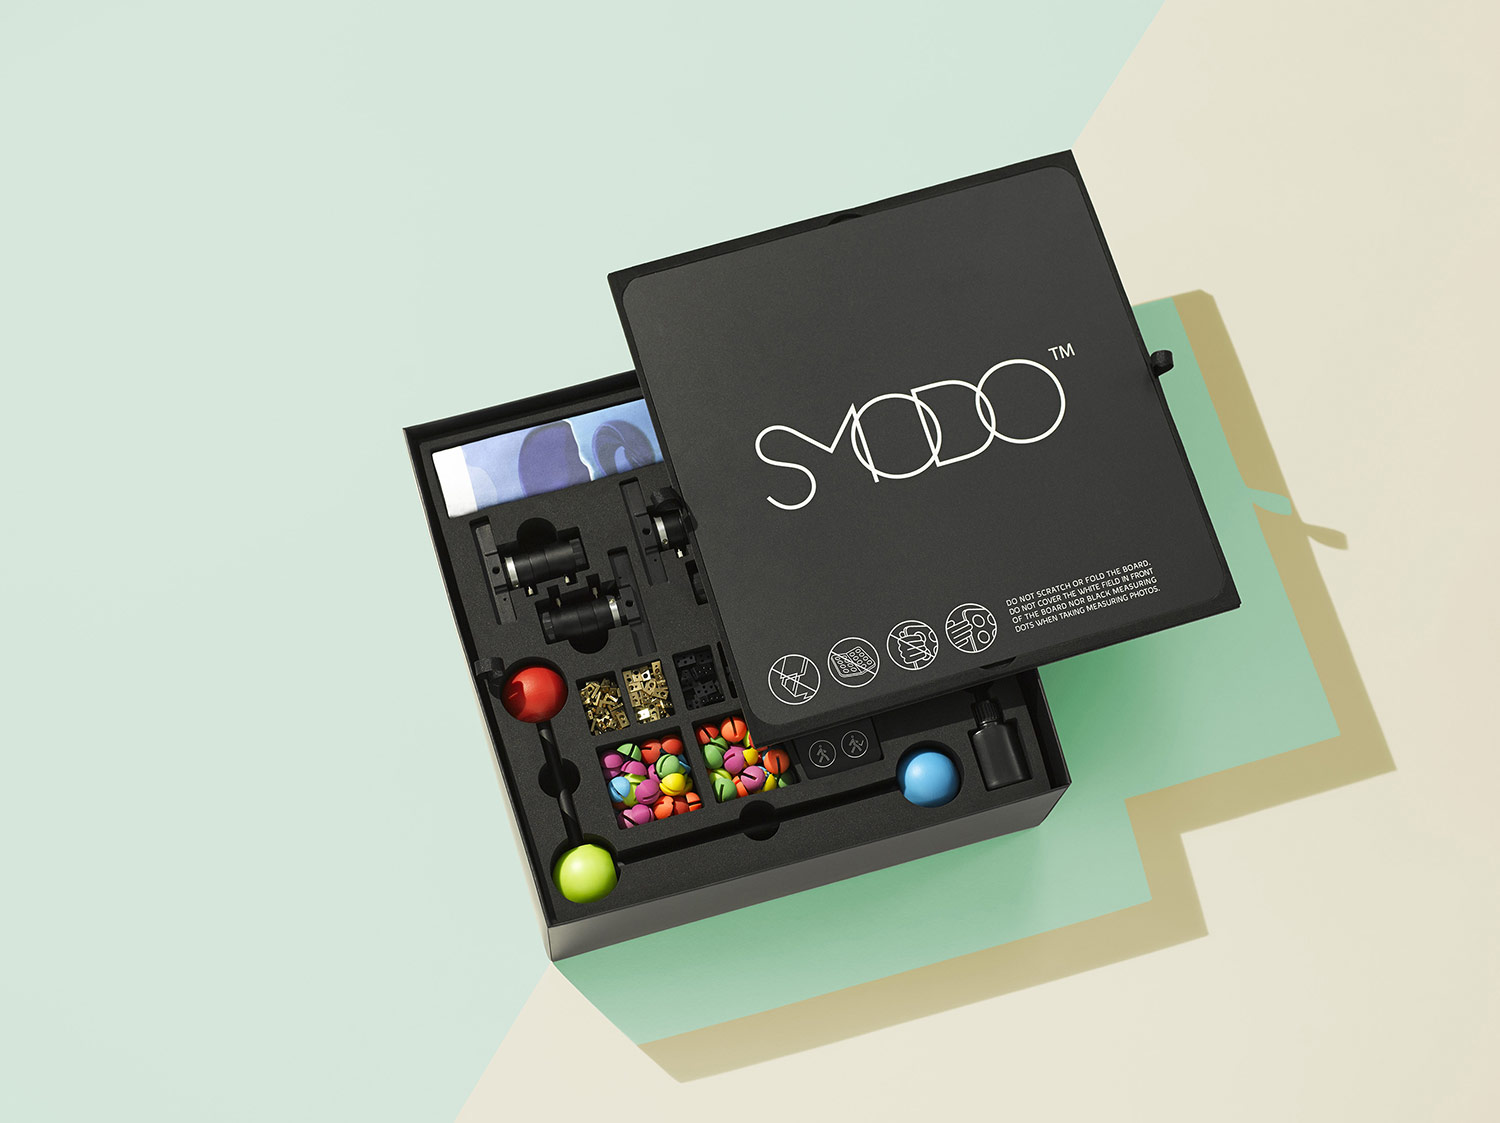 The SMODO kit will ship in one convenient box.